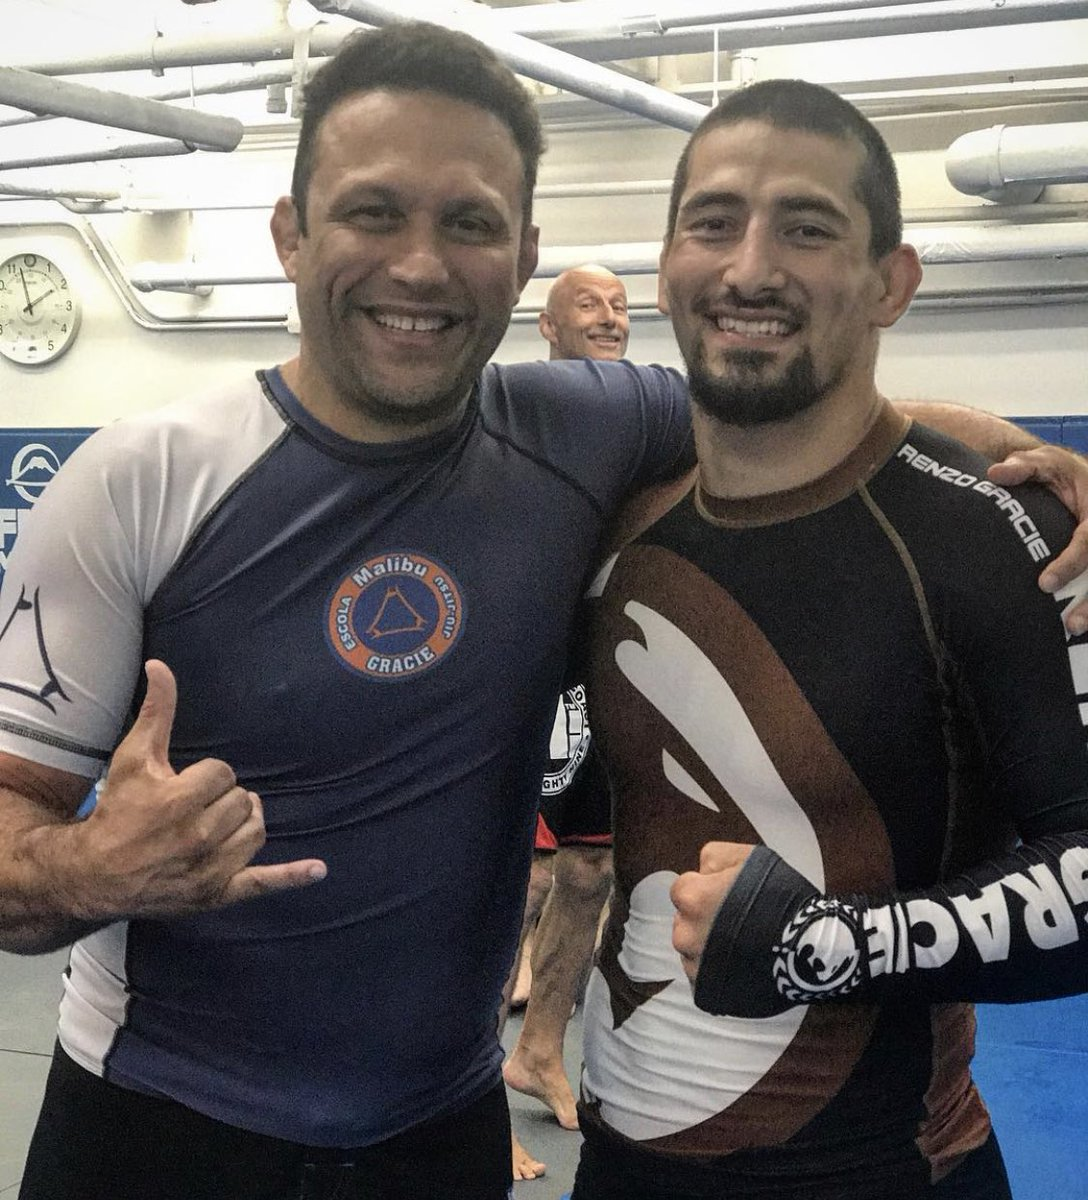 One of the most amazing humans this man is! Thank you for everything you have done for us modern fighters @RenzoGracieBJJ #teamrenzogracie #mma #bjj https://t.co/kSykgSSnaG